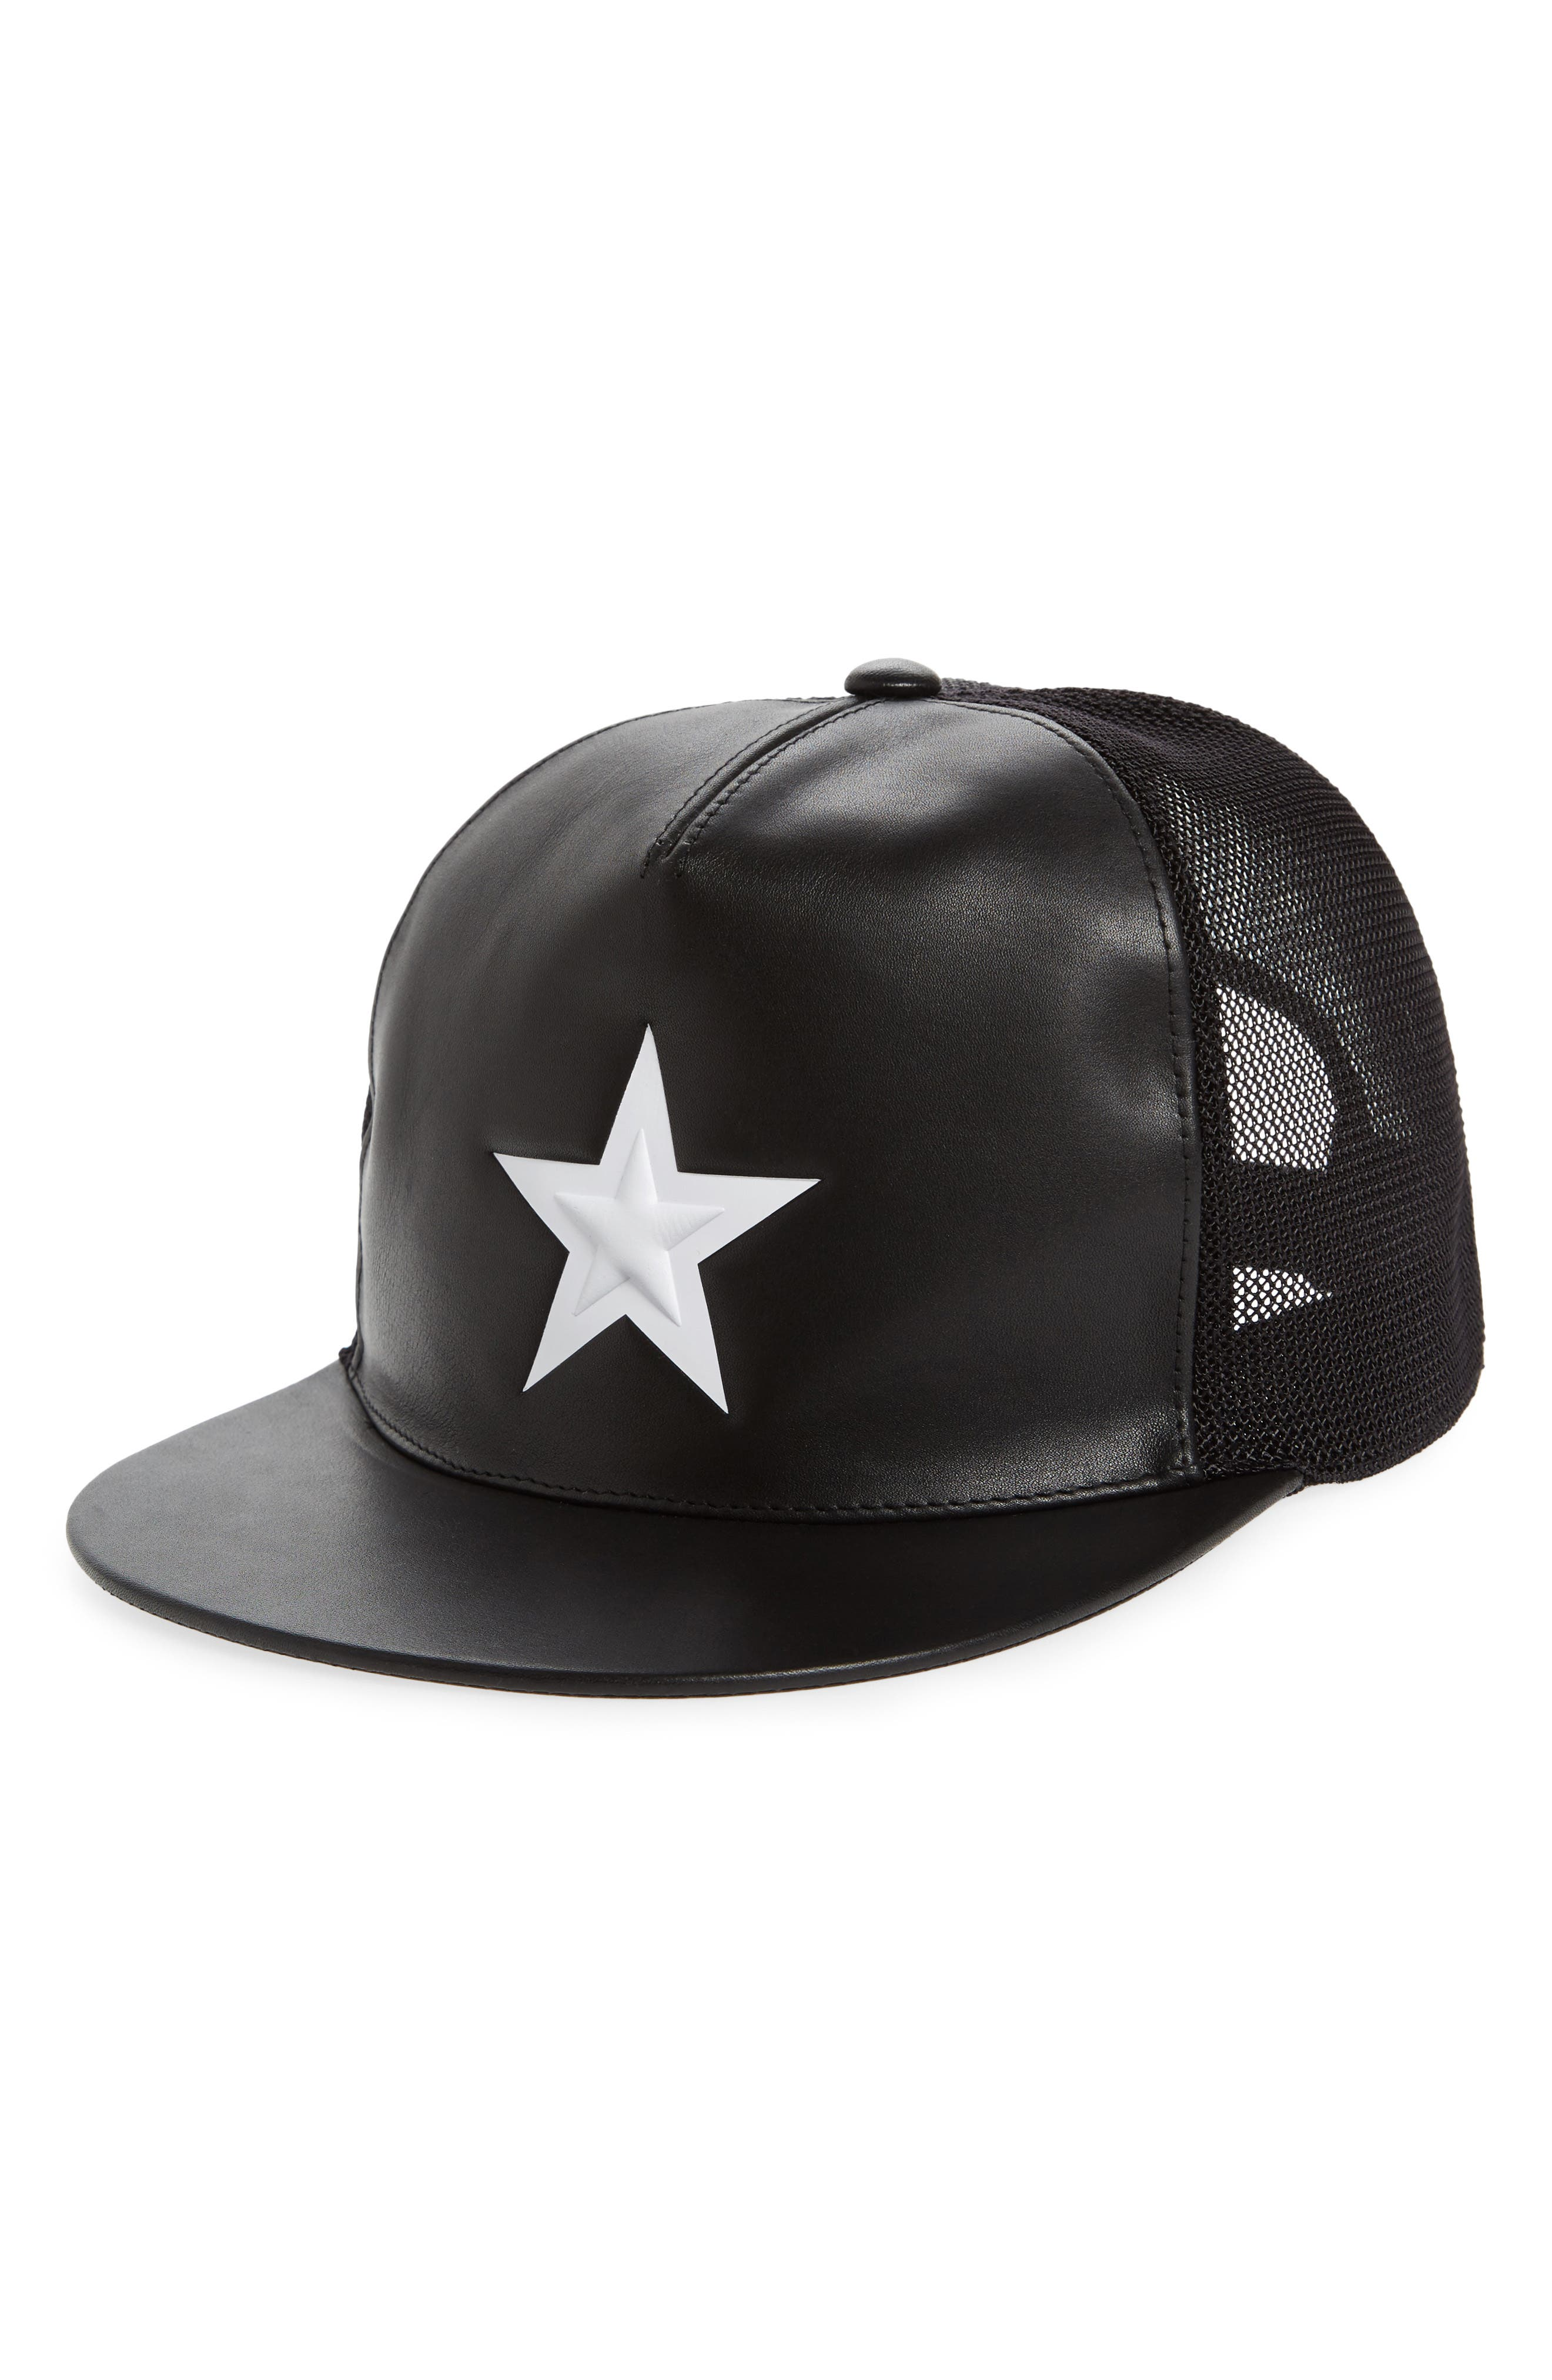 Star Leather Trucker Cap,                             Main thumbnail 1, color,                             004